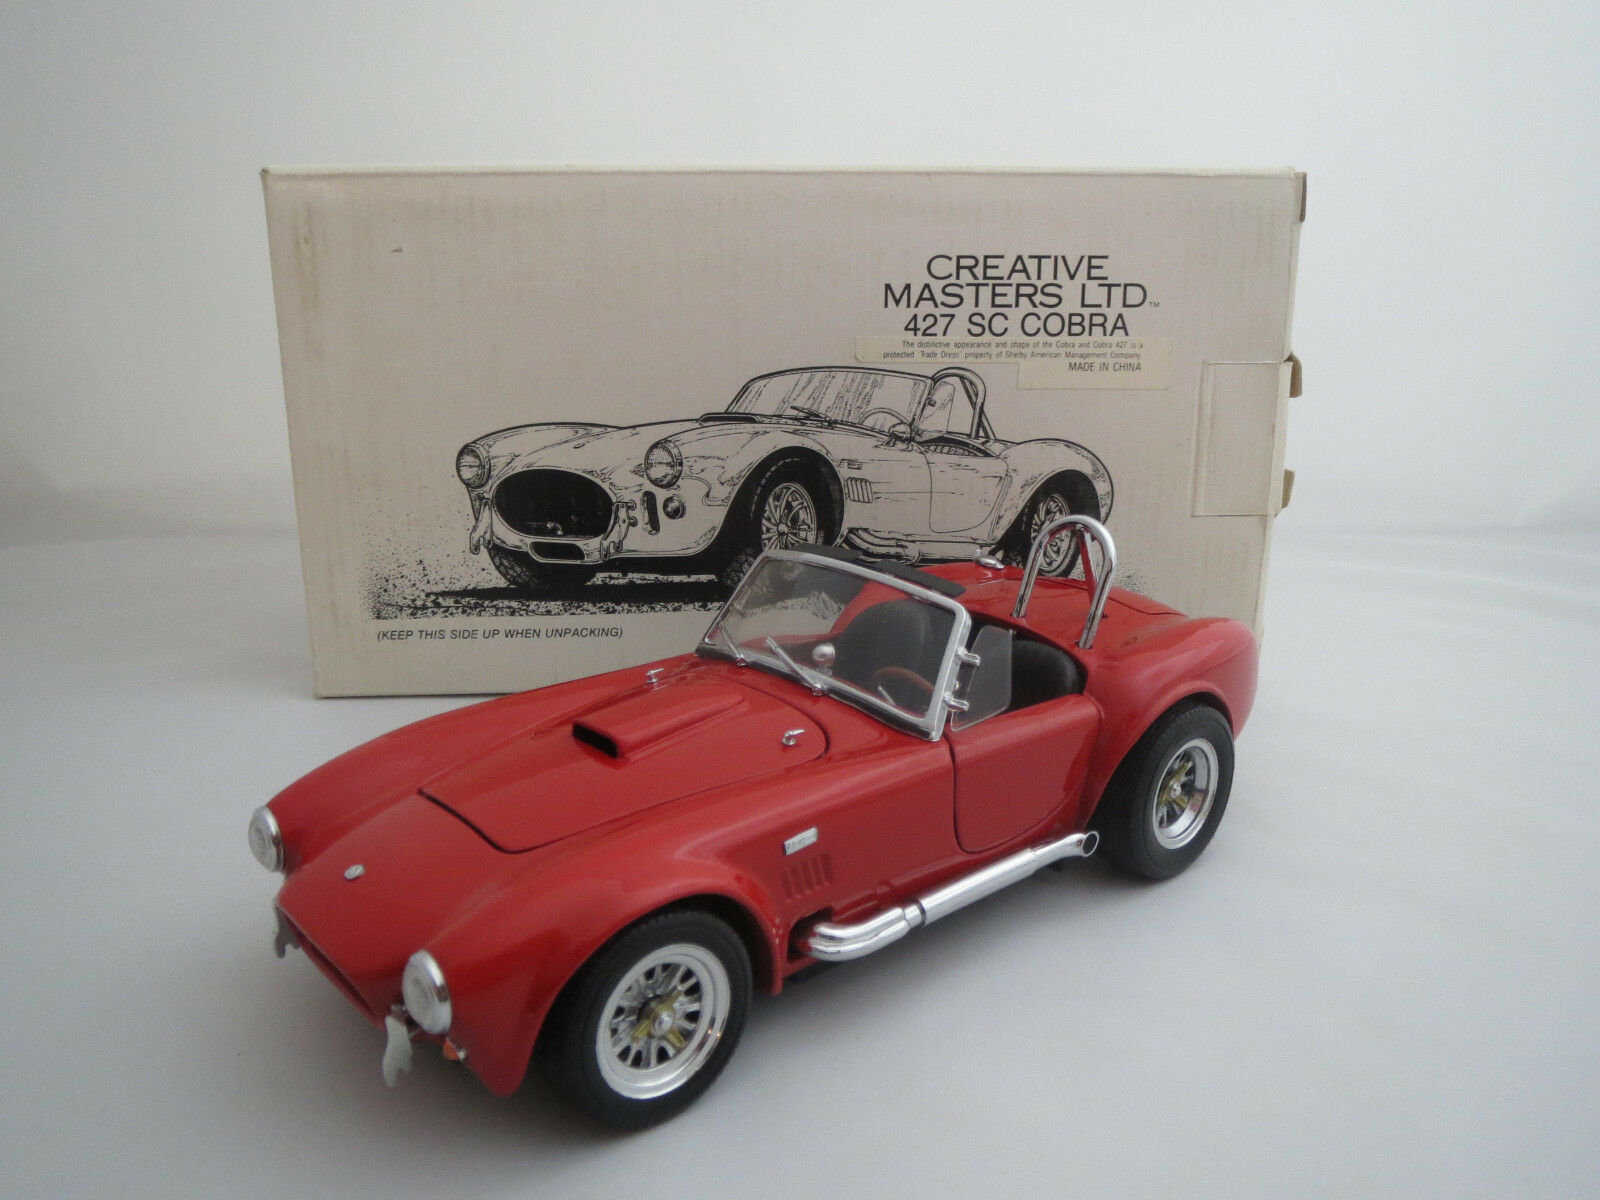 Creative masters Ltd 427 SC cobra (rosso) 1 20 embalaje original